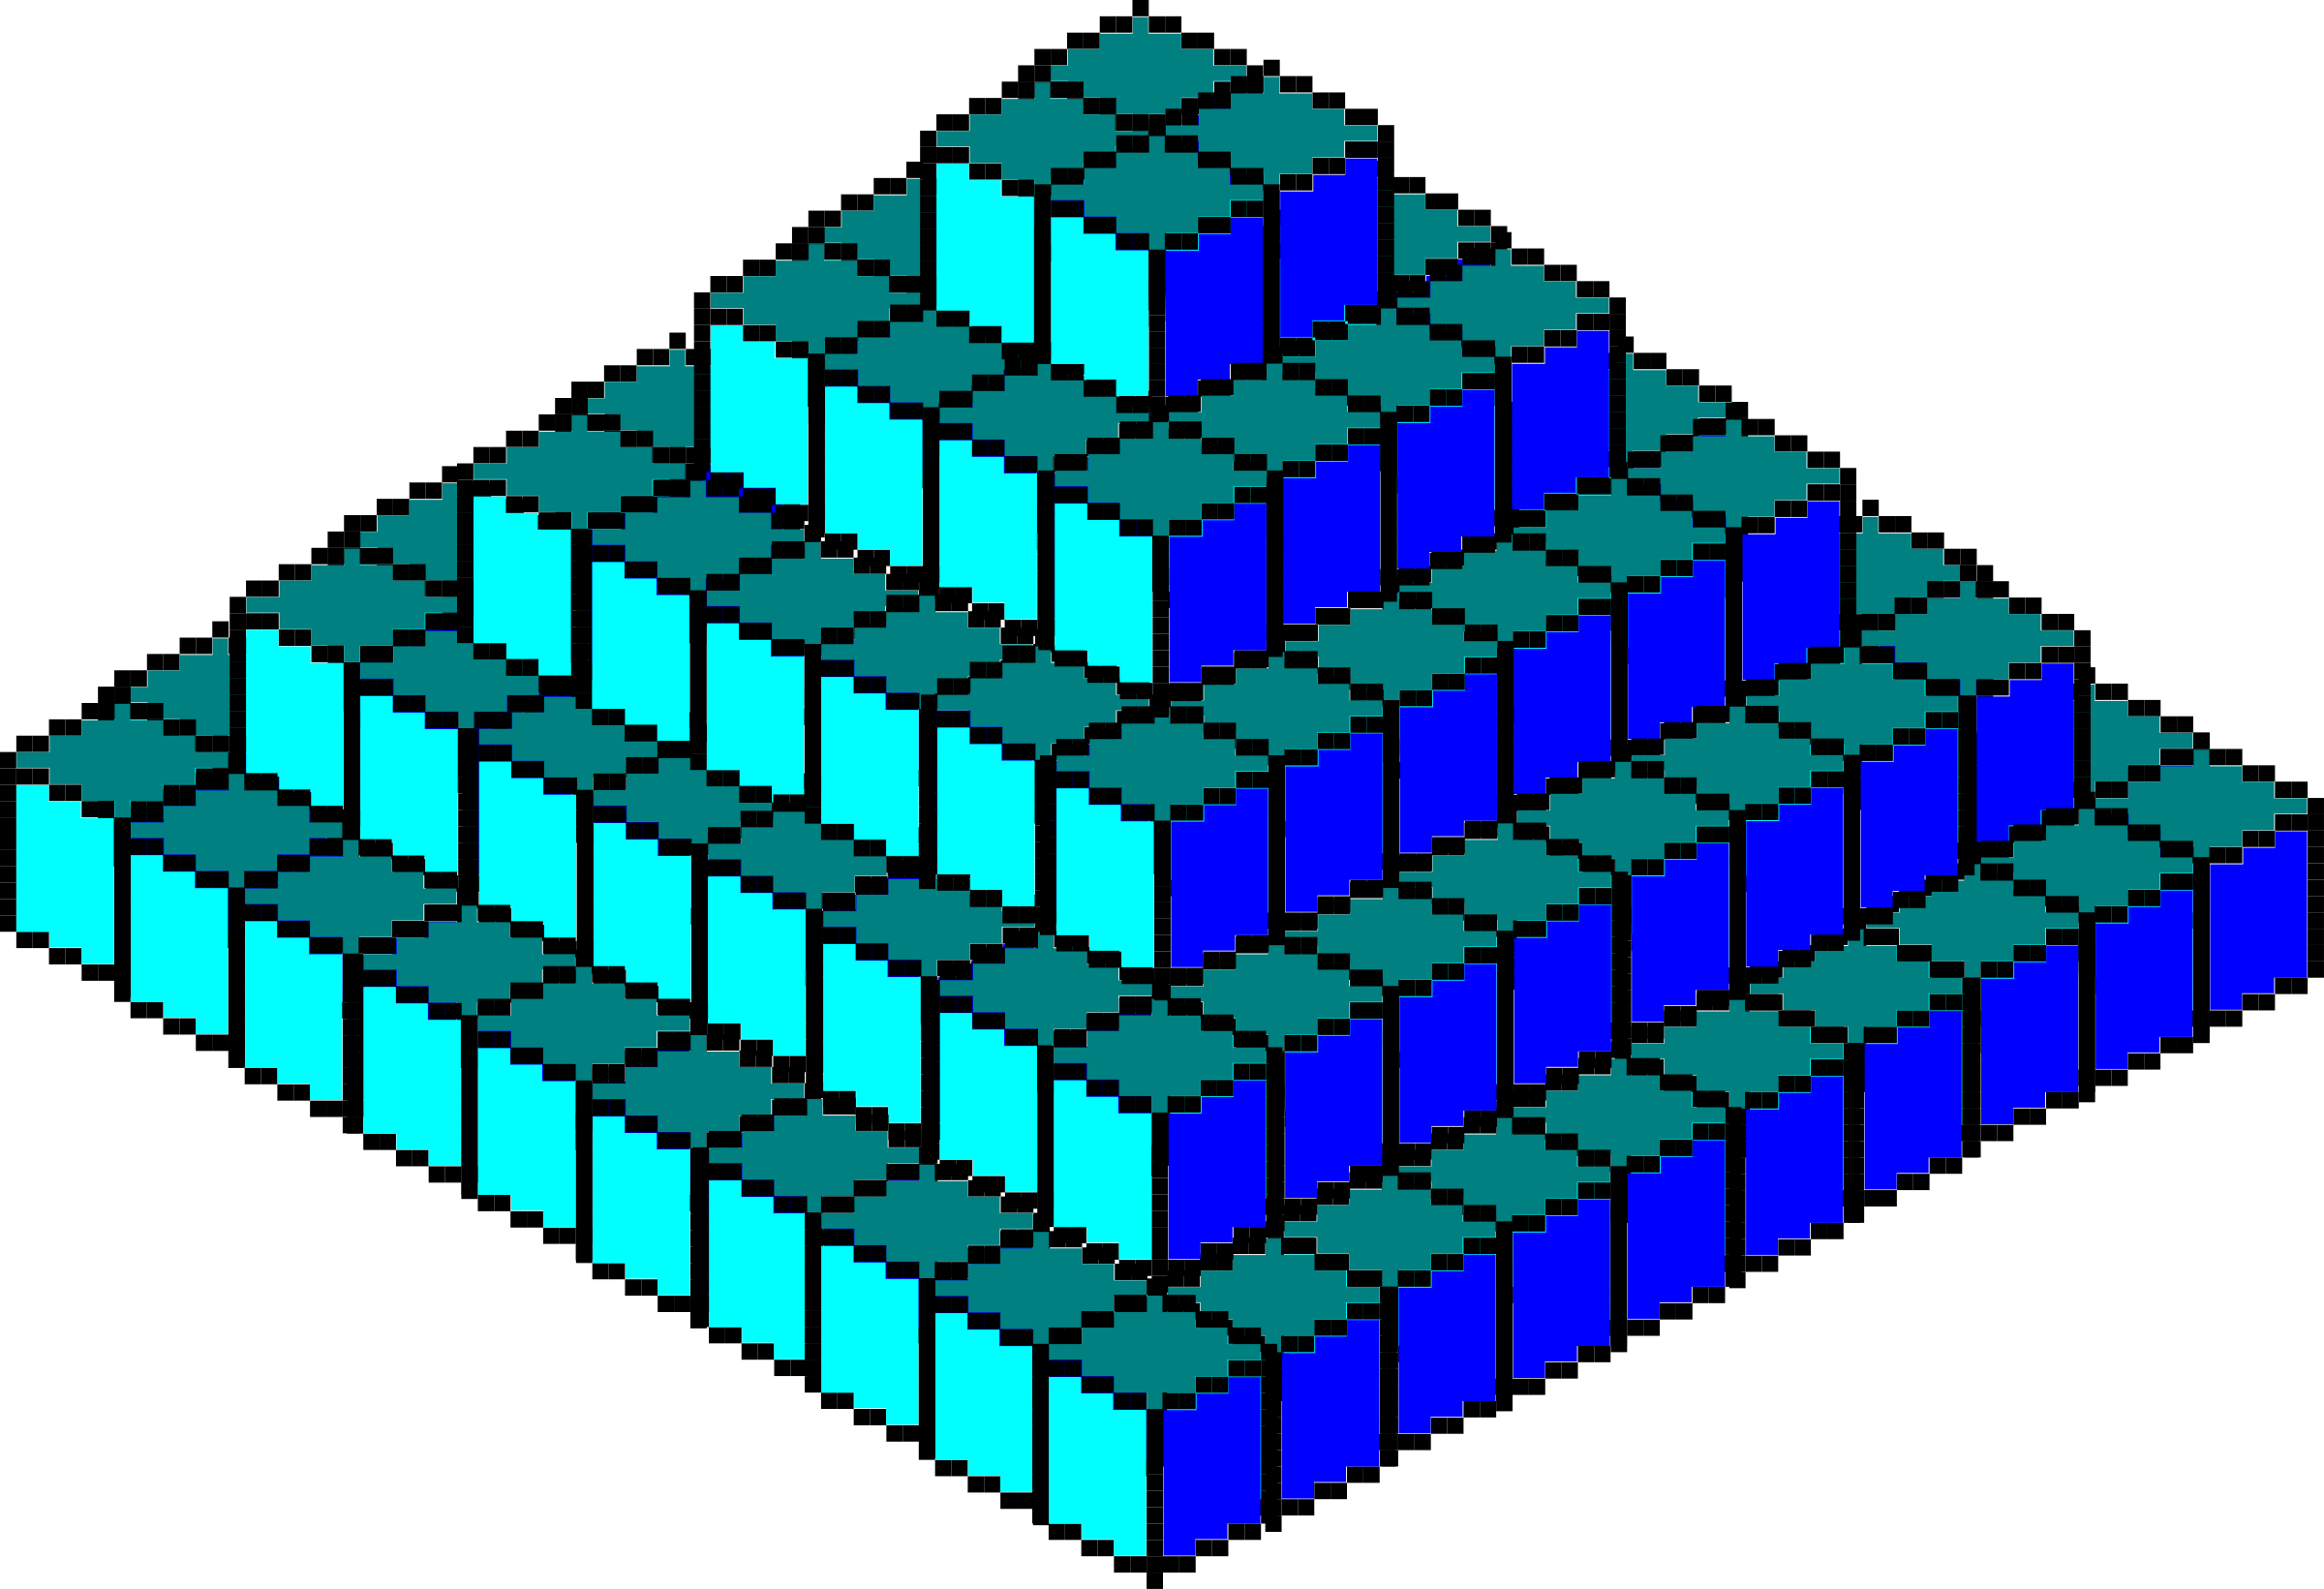 Pixel Piramide by asrafil